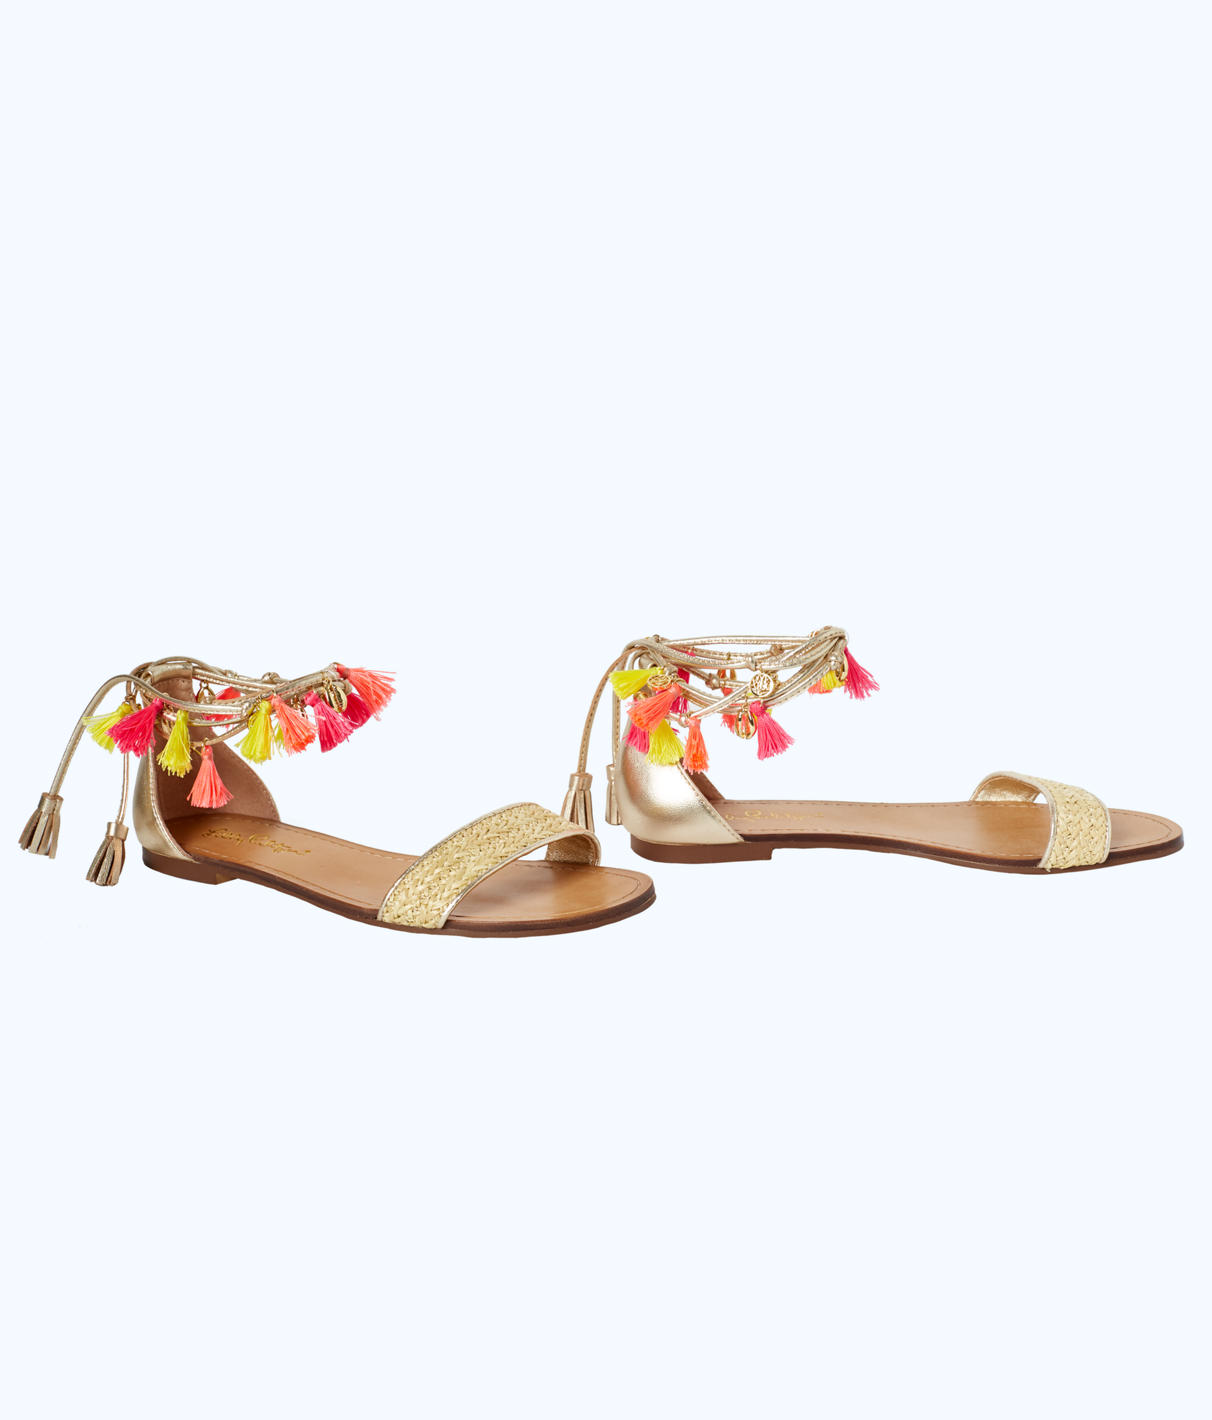 Lilly Pulitzer Lilly Pulitzer Womens Willa Sandal